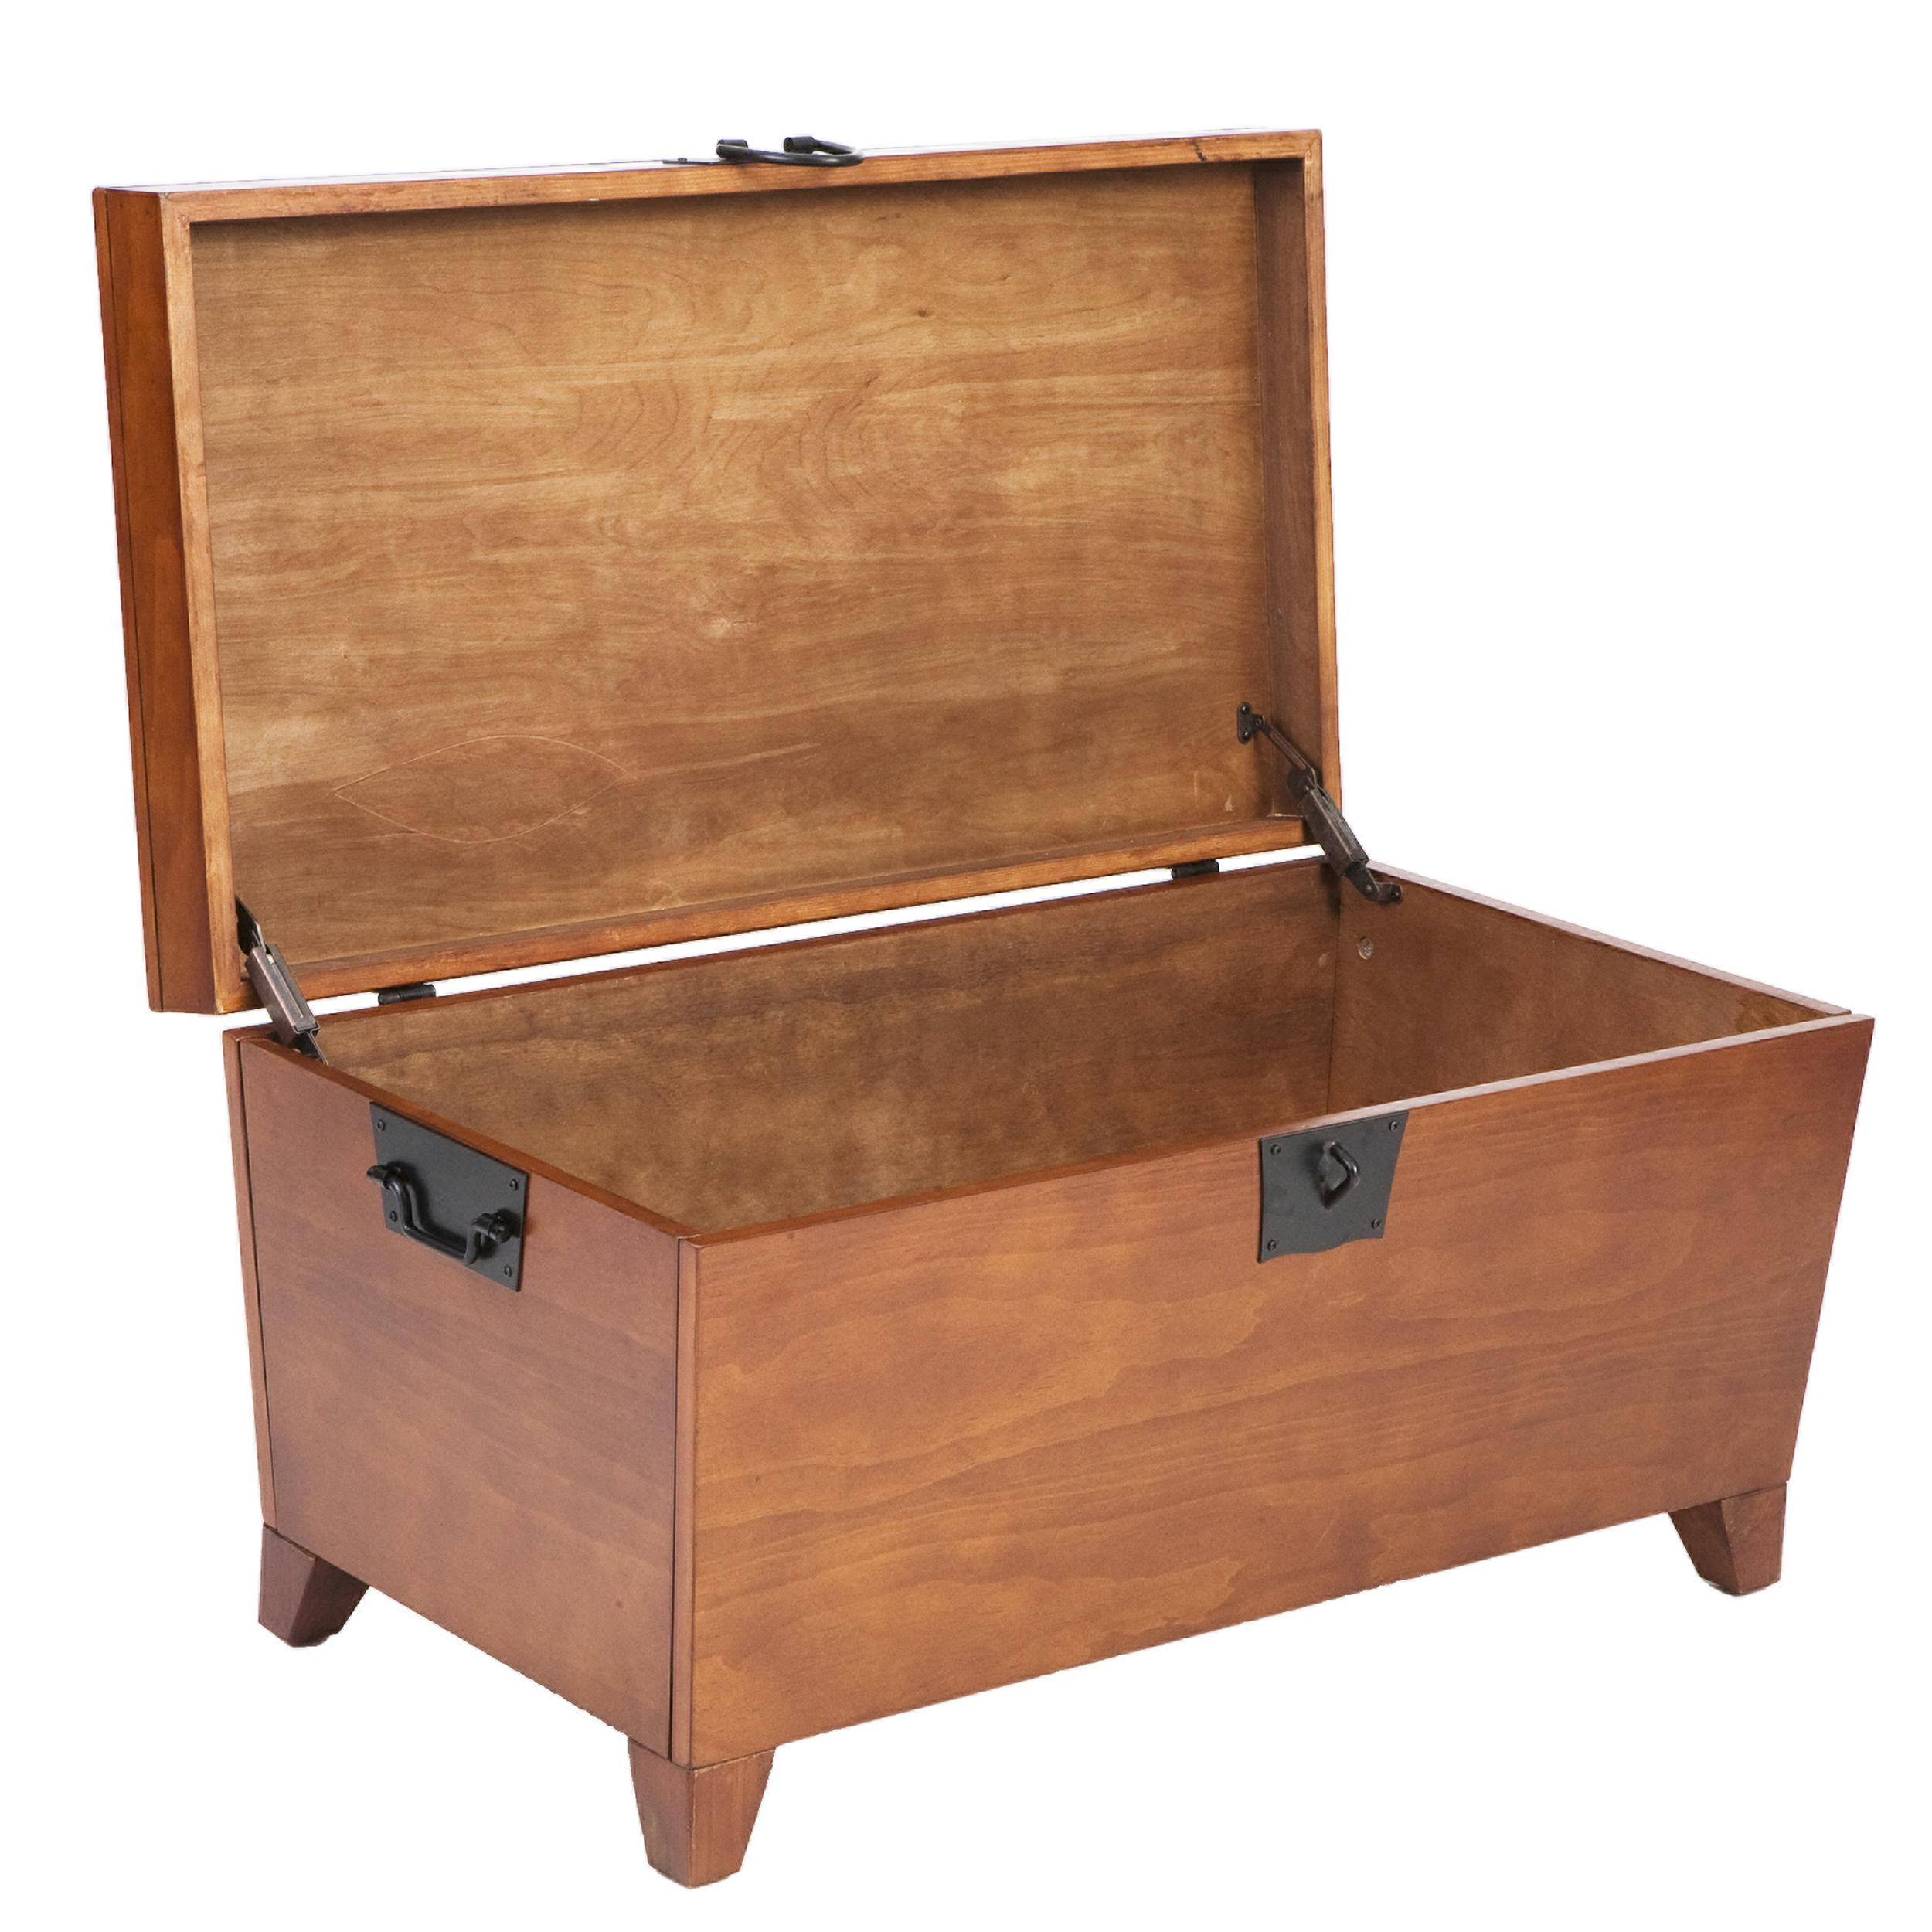 Southern Enterprises Pyramid Storage Trunk Cocktail Table Mission Oak Finish